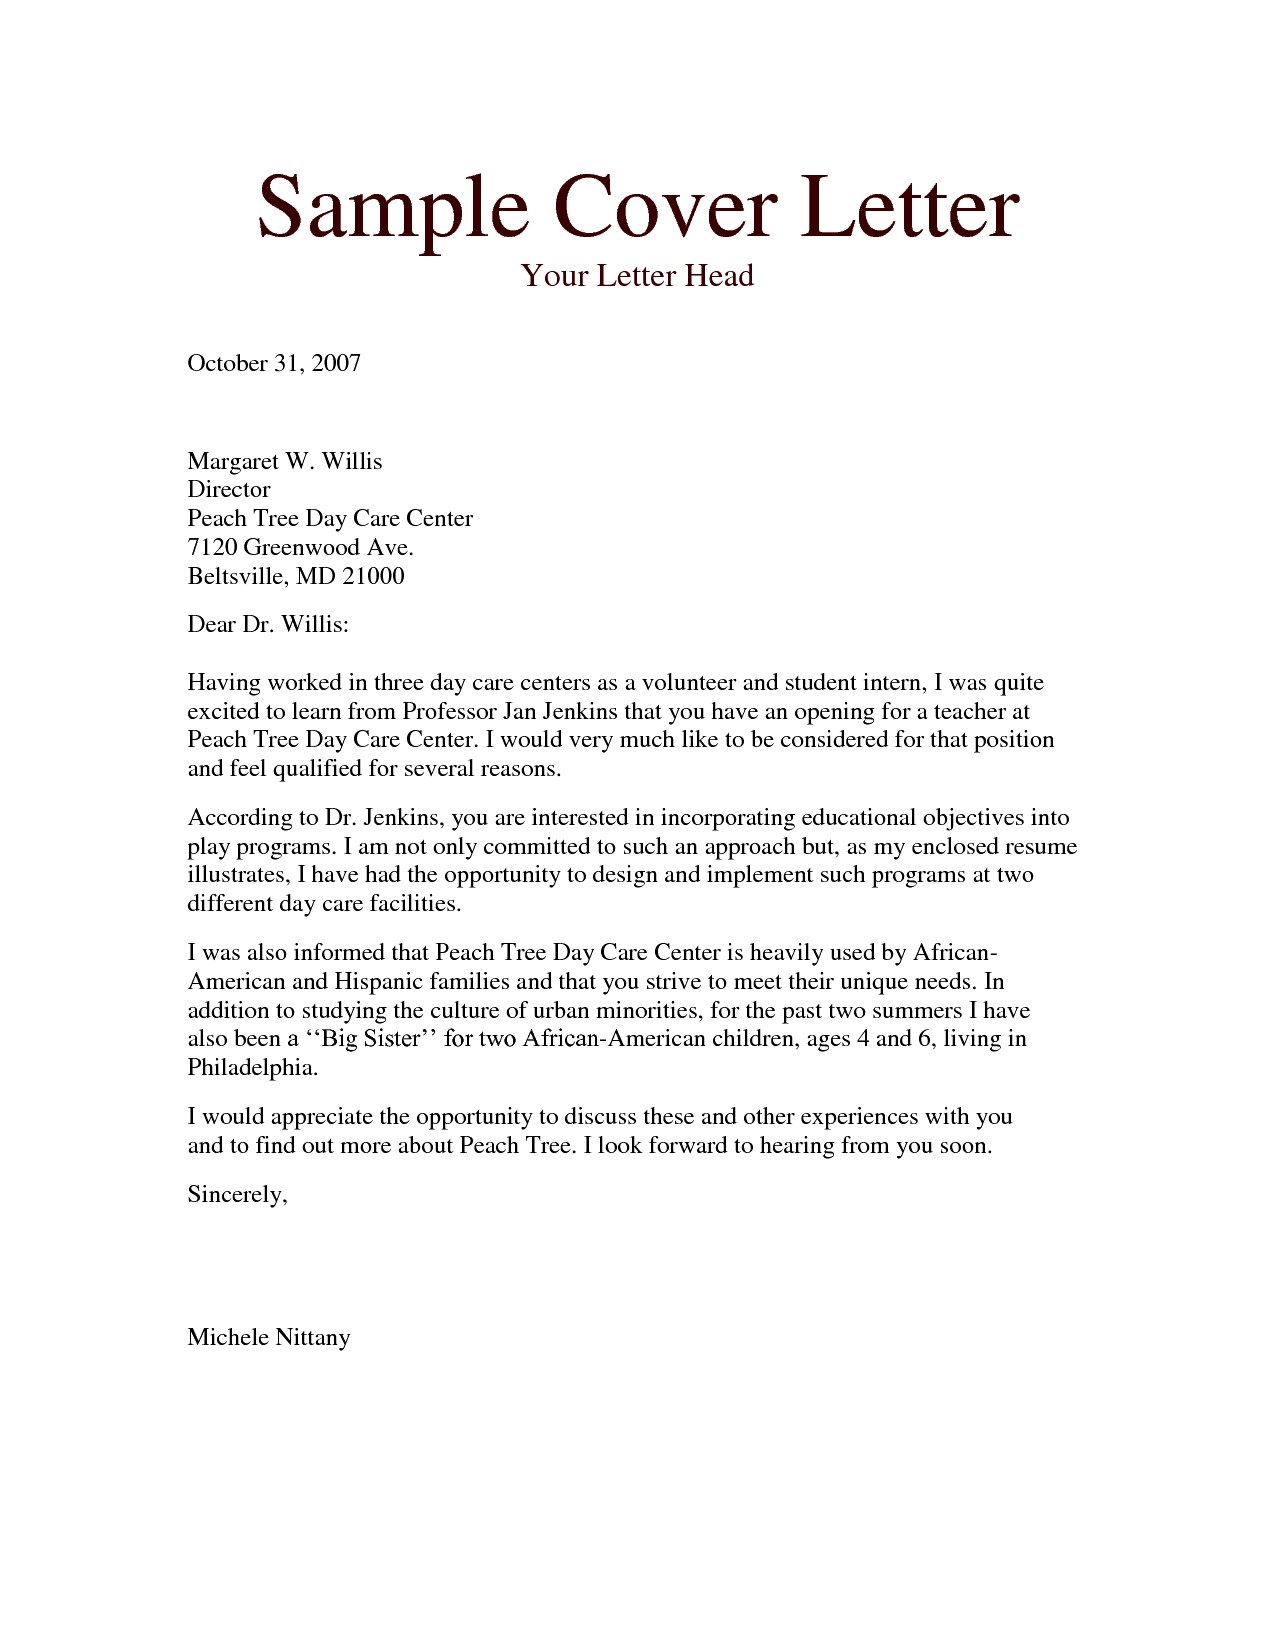 Police Officer Cover Letter Template - Contract for Design Construction and Construction Management